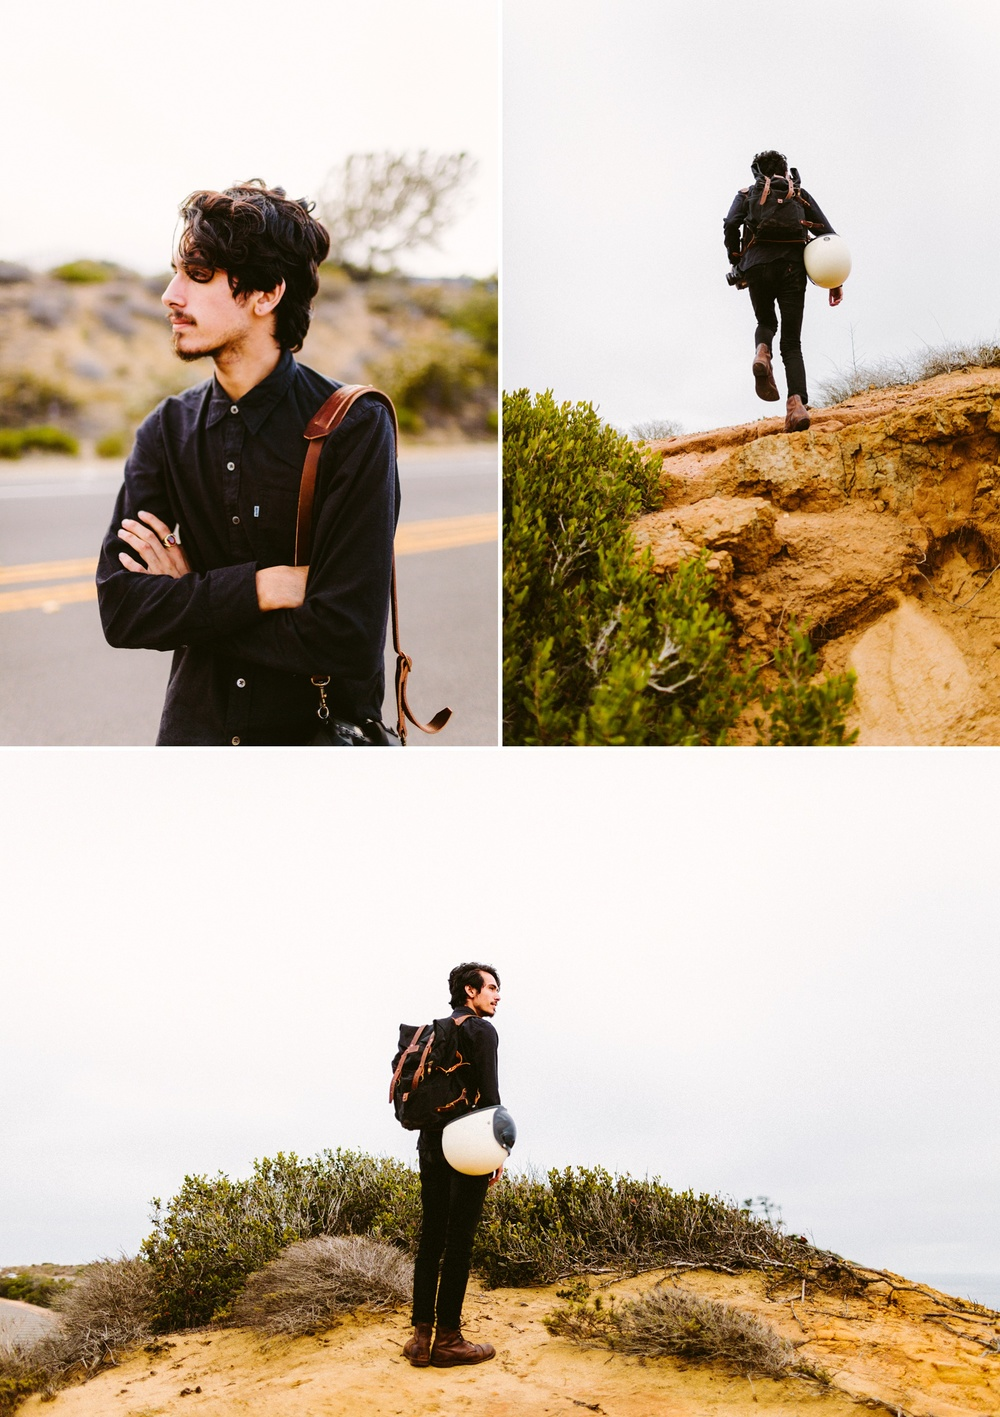 zack buras | victoria heer | victoria heer photography | bradley mountain | san diego | san diego photographer | adventure photography